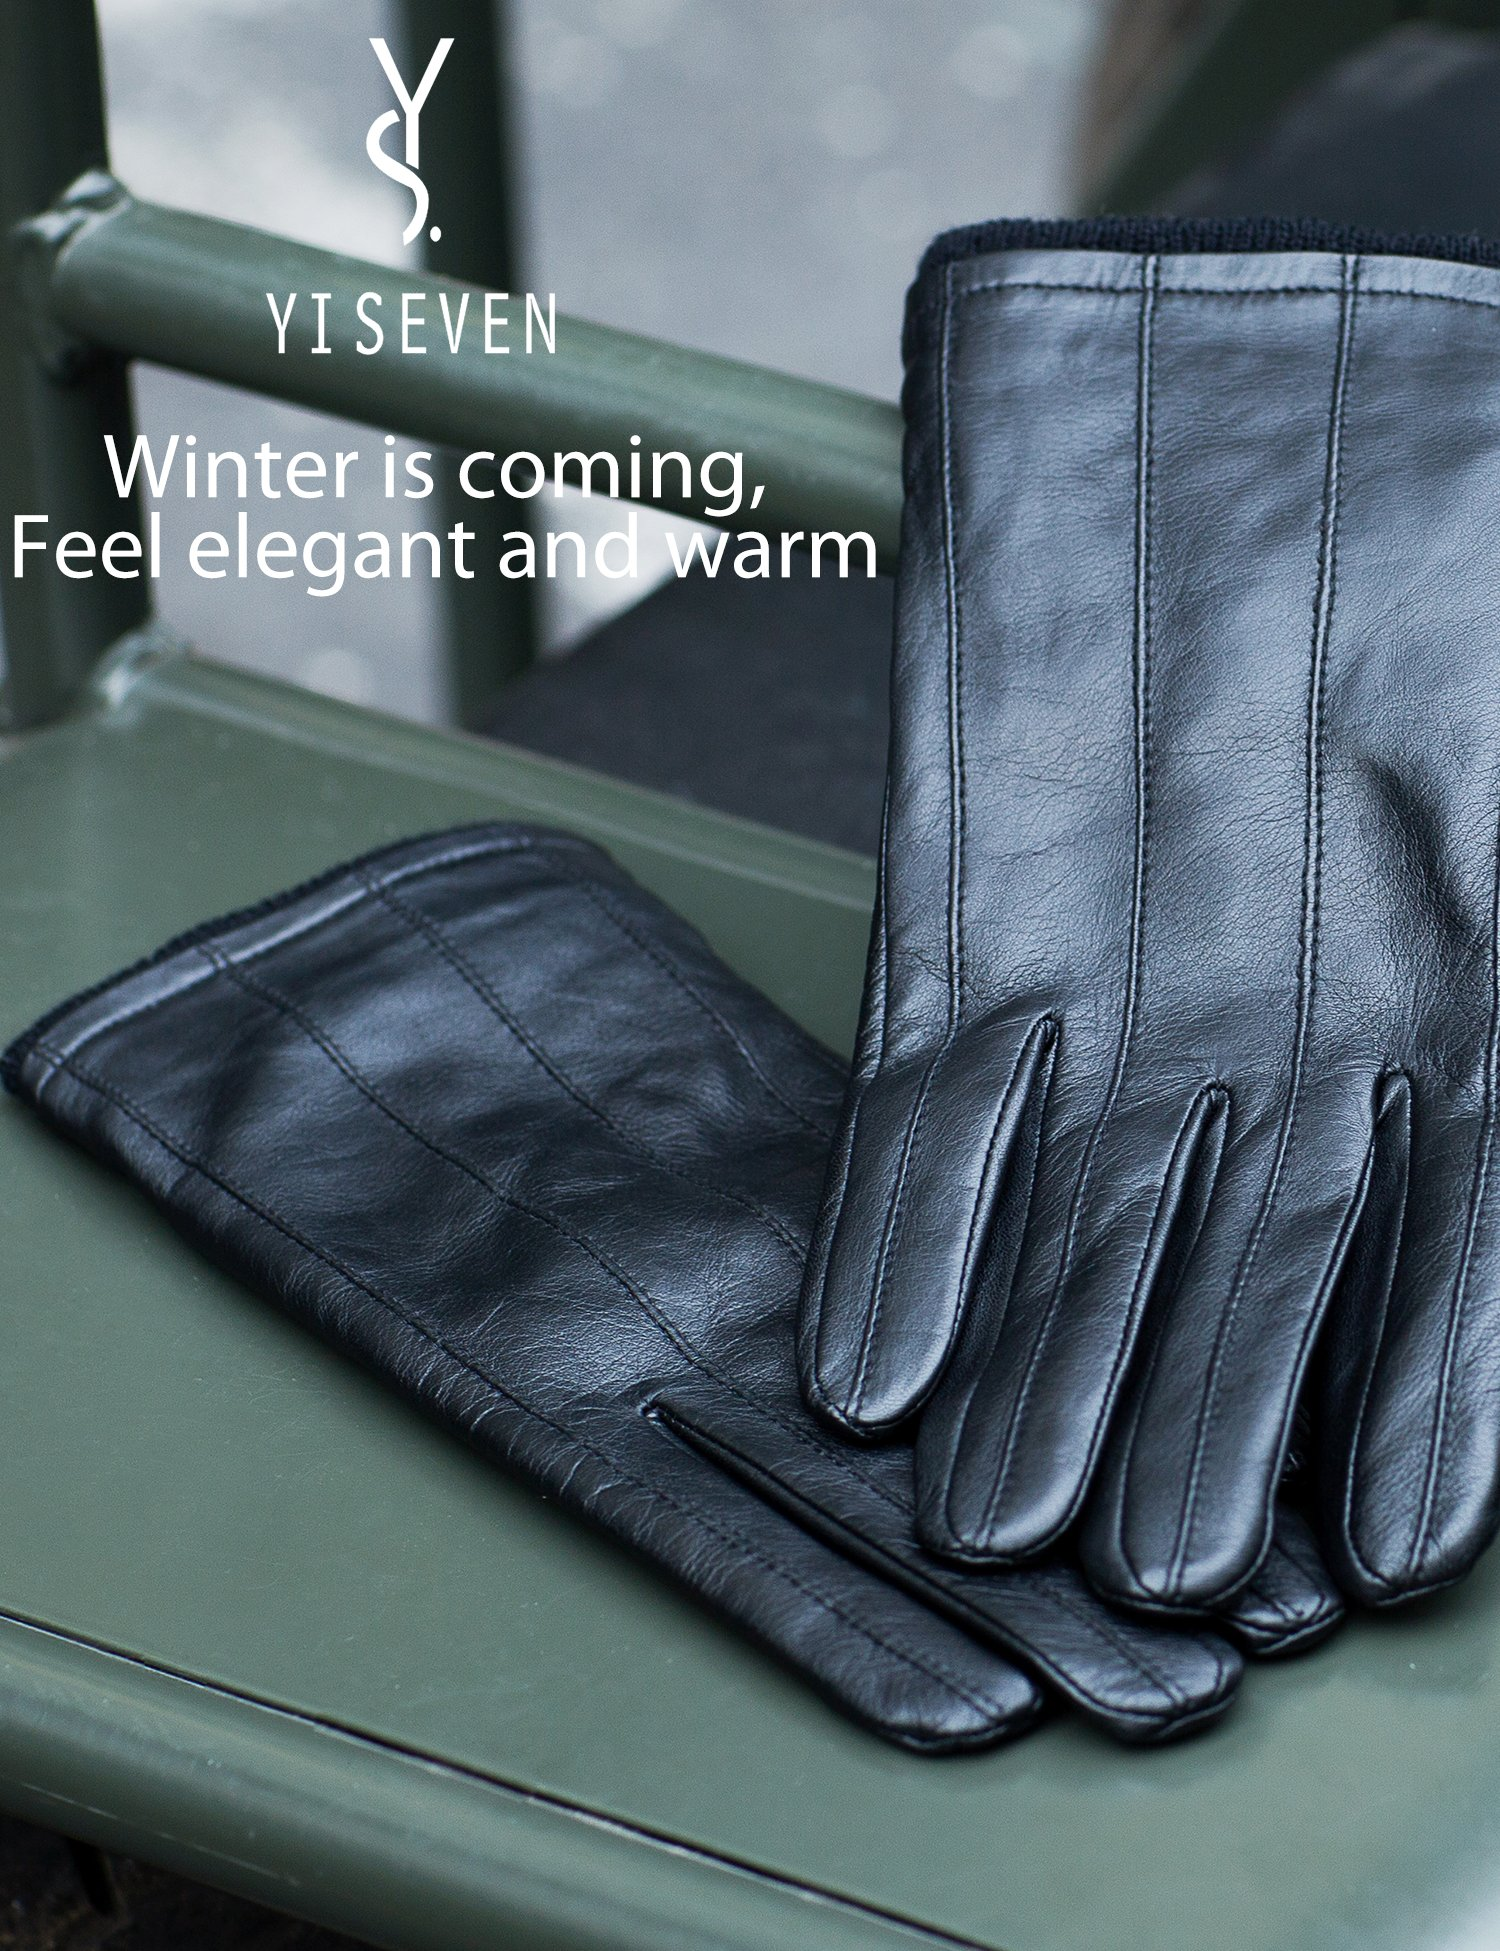 YISEVEN Men's Genuine Nappa Leather Lined Winter Gloves -Black/Touchscreen,Black,11'' by YISEVEN (Image #2)